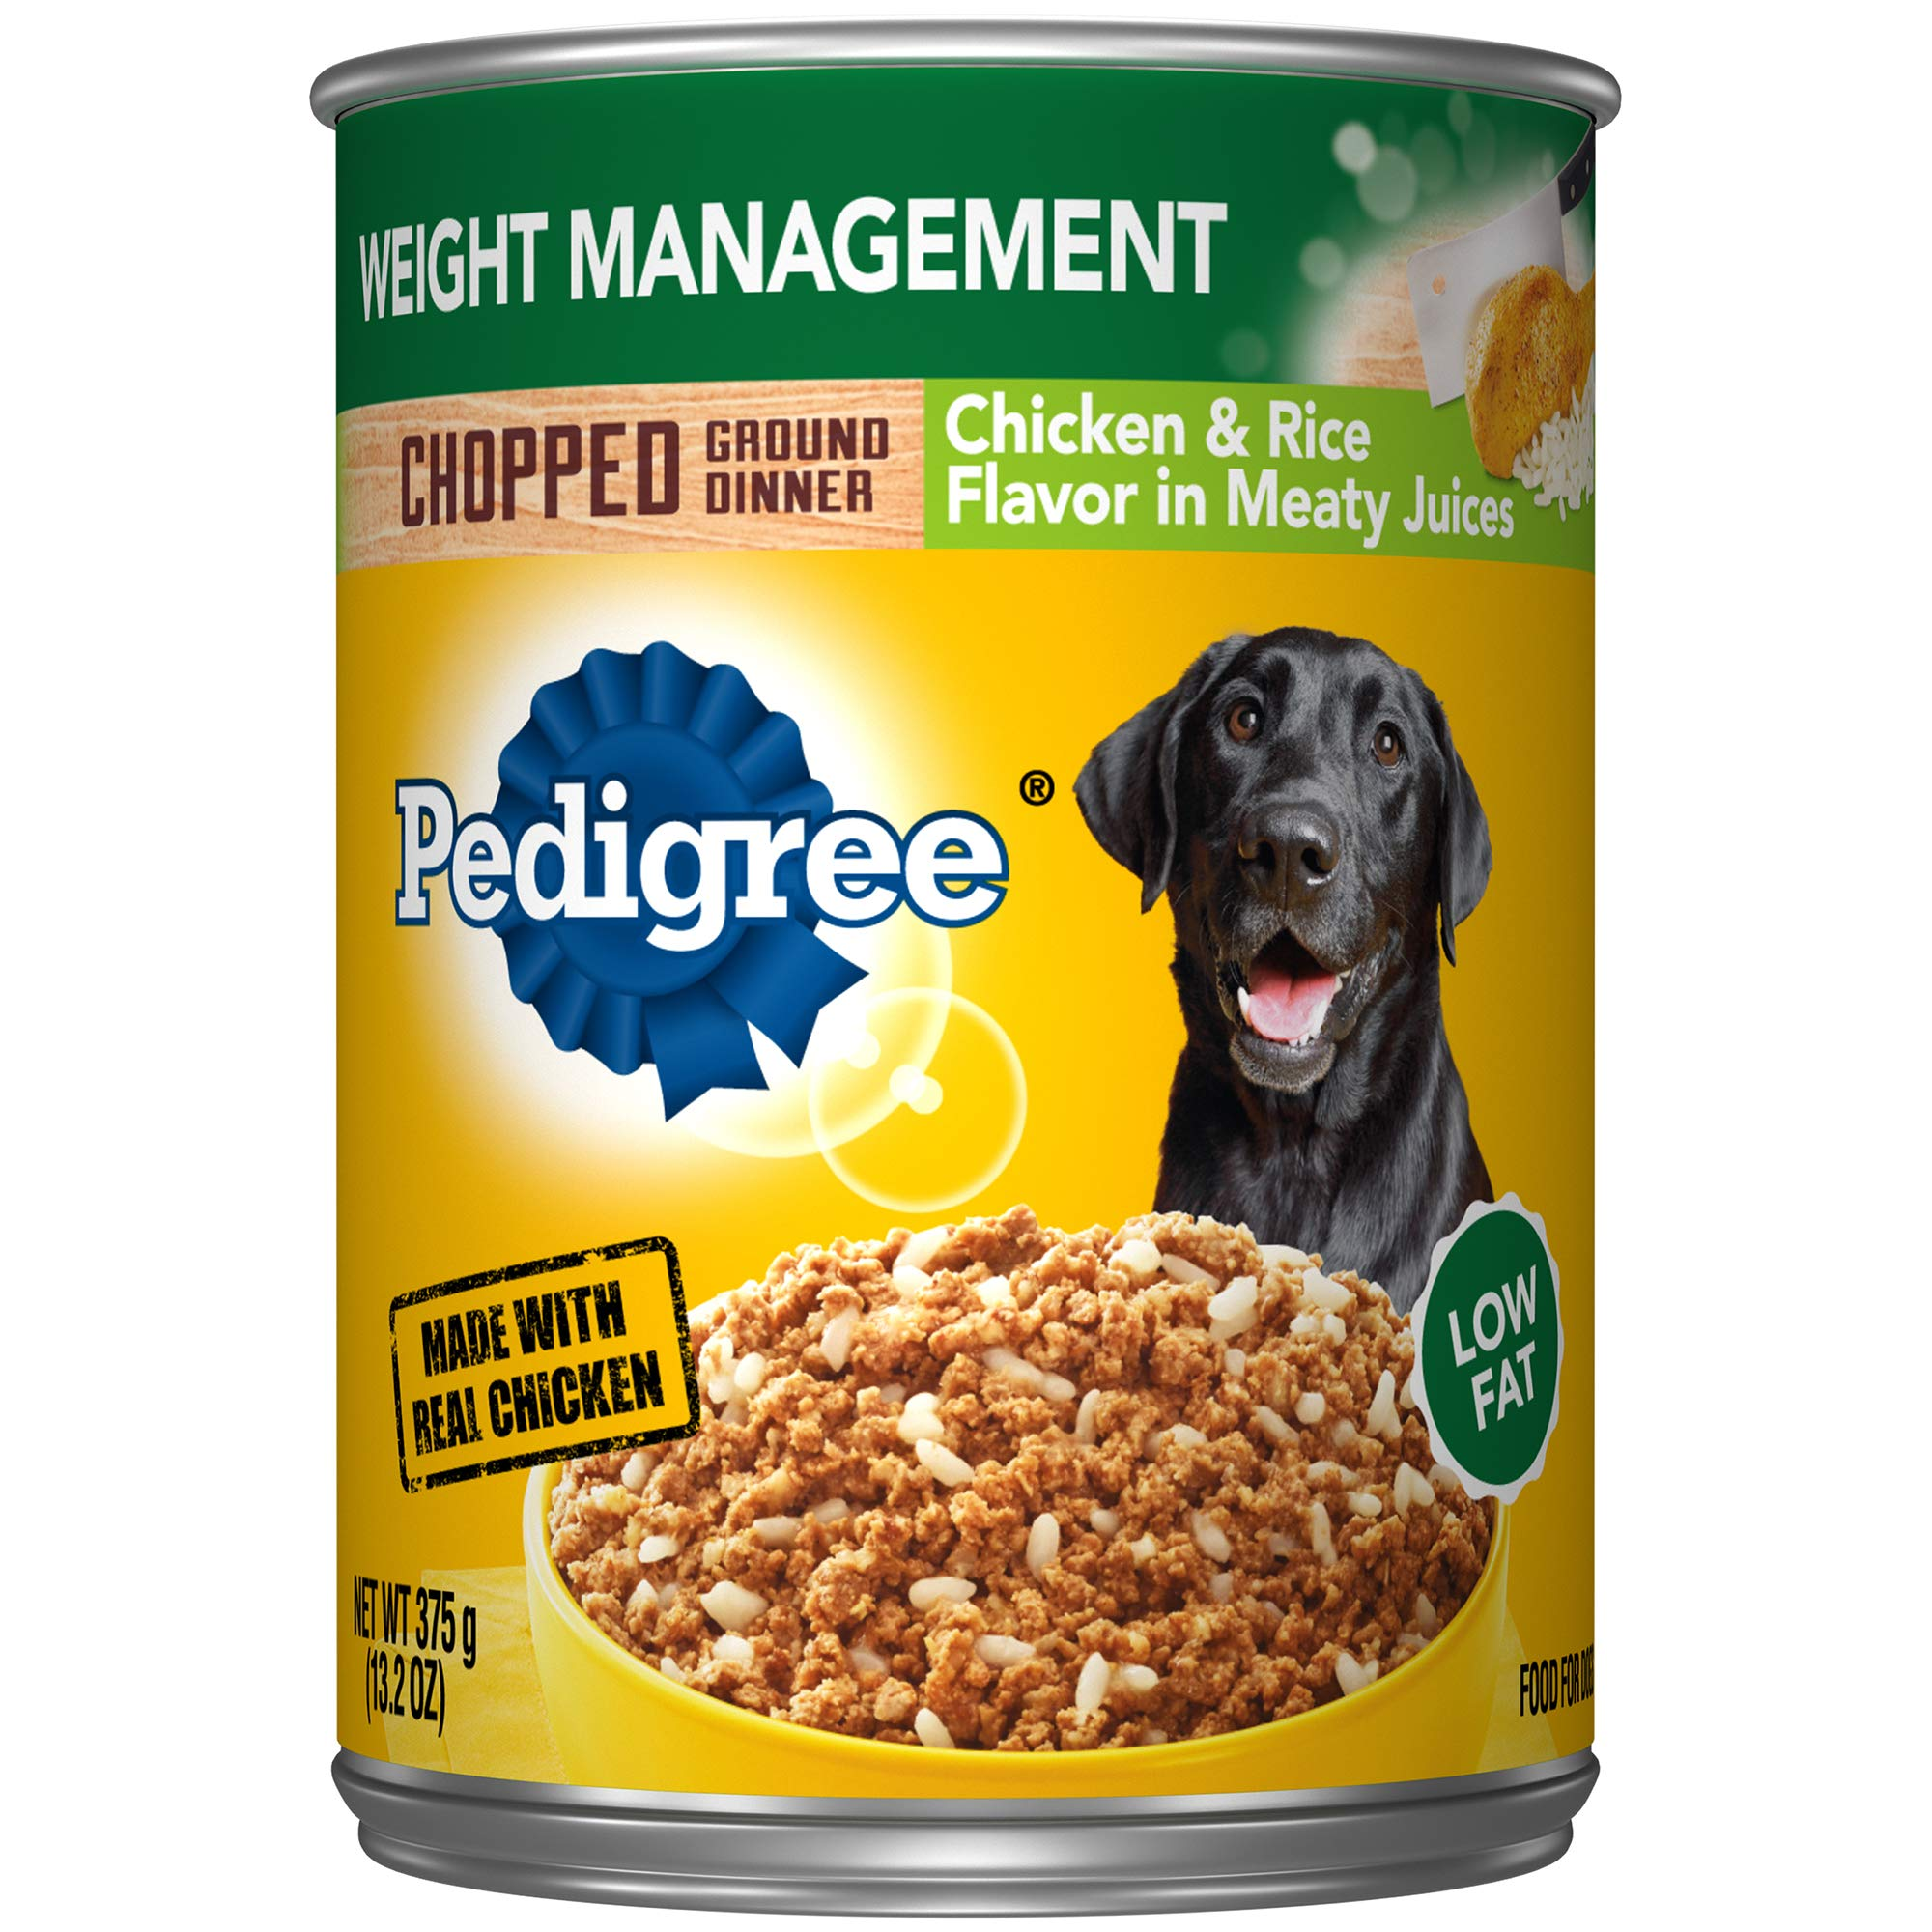 Pedigree Chopped Ground Dinner Weight Management Chicken & Rice Flavor Adult Canned Wet Dog Food, (12) 13.2 Oz. Cans by Pedigree